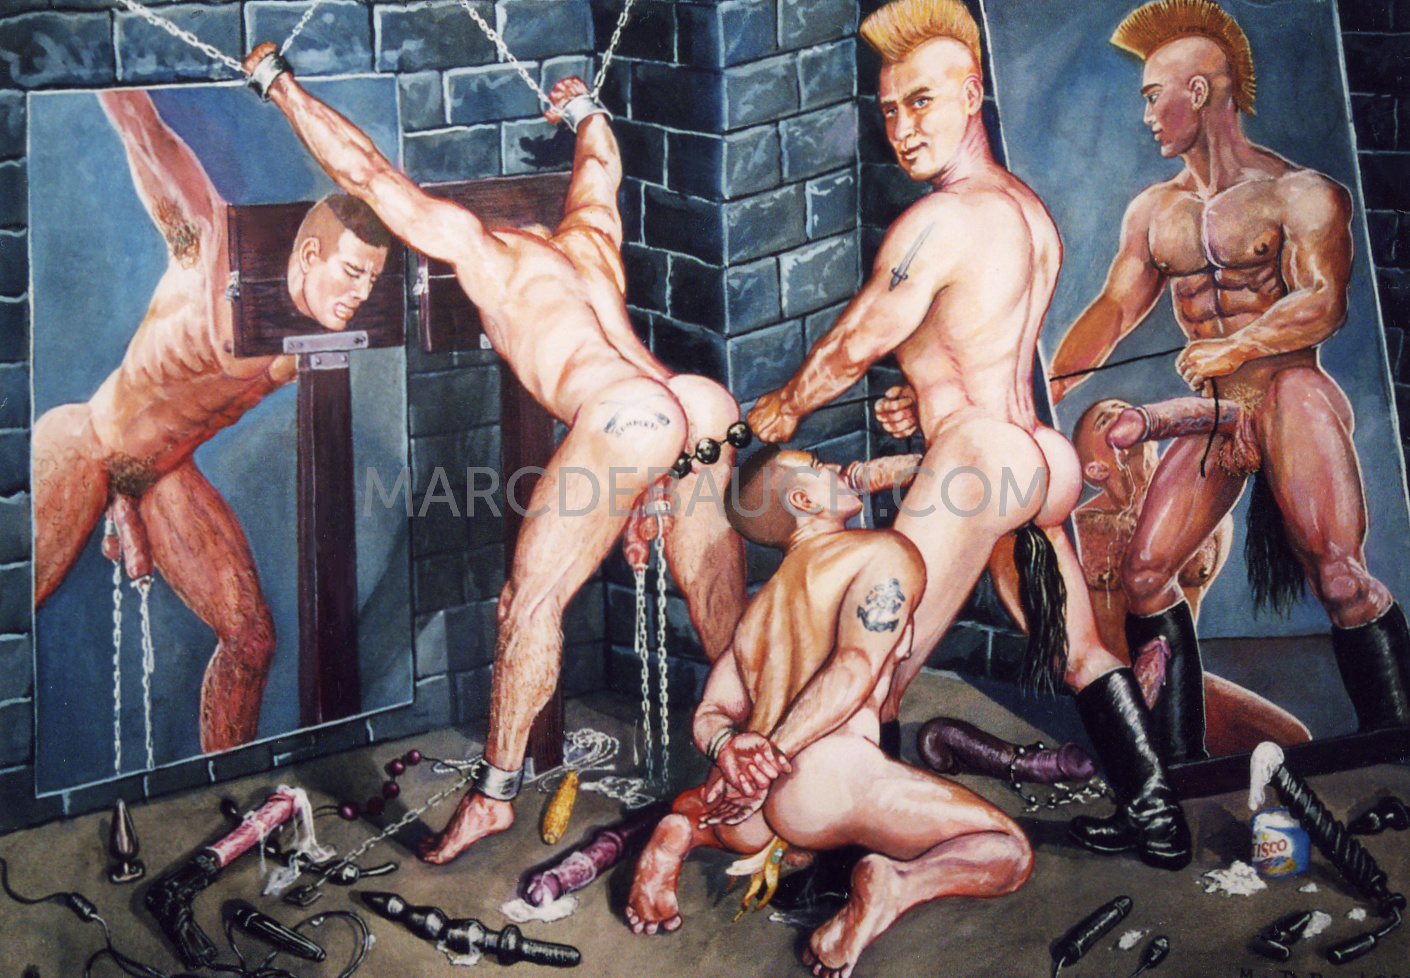 TOY DADDY'S DUNGEON